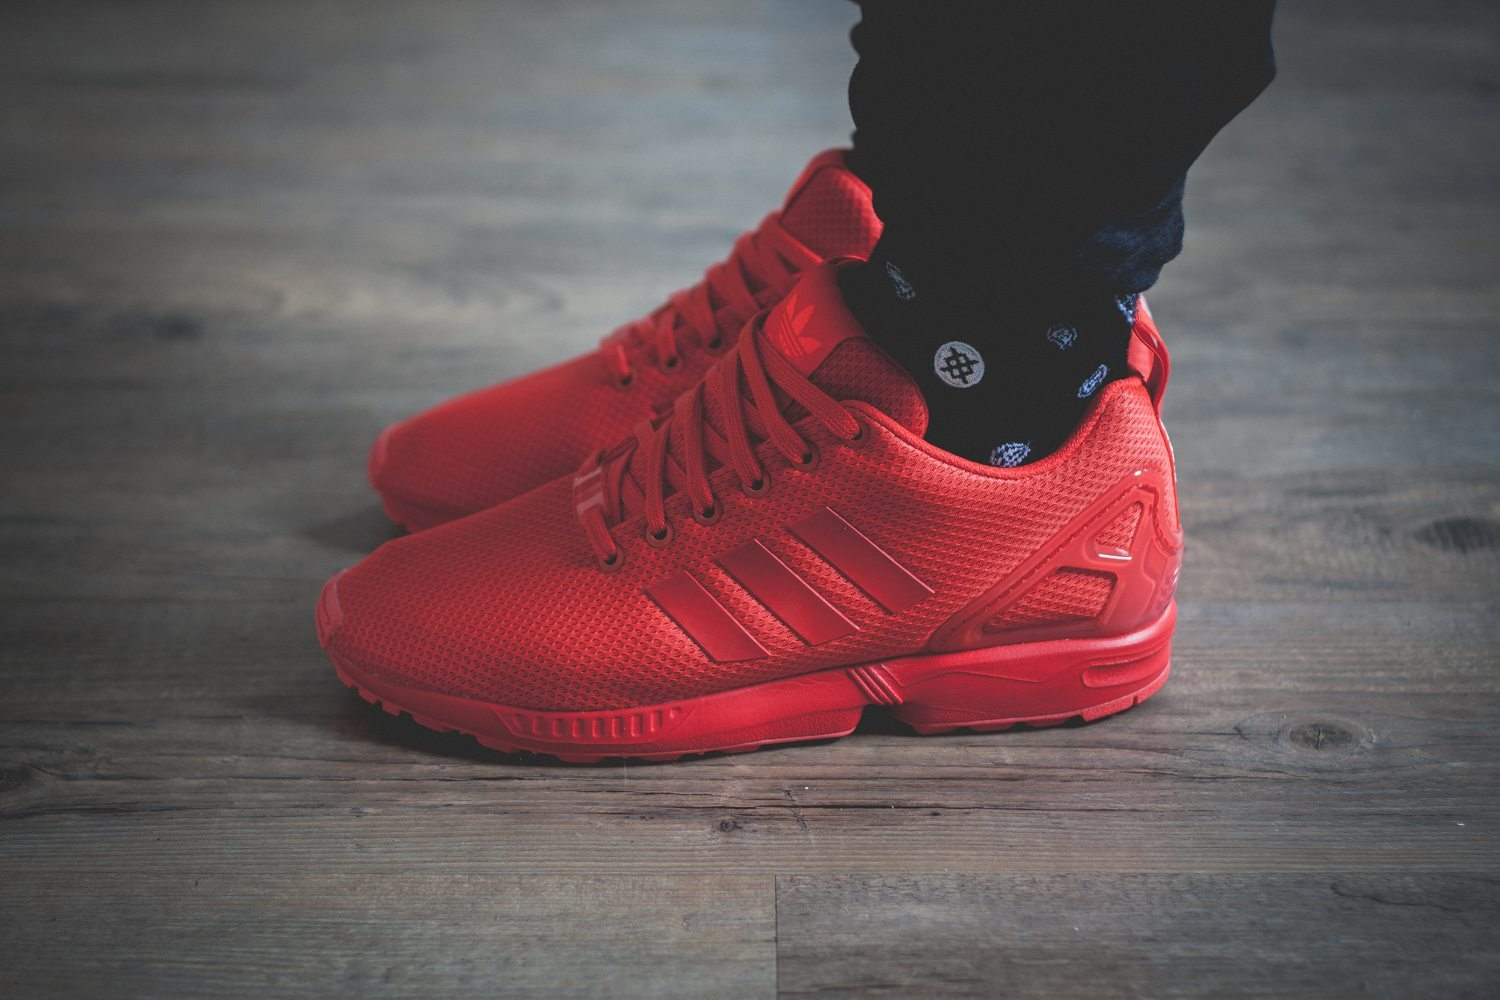 adidas originals zx flux all red review seite 2. Black Bedroom Furniture Sets. Home Design Ideas